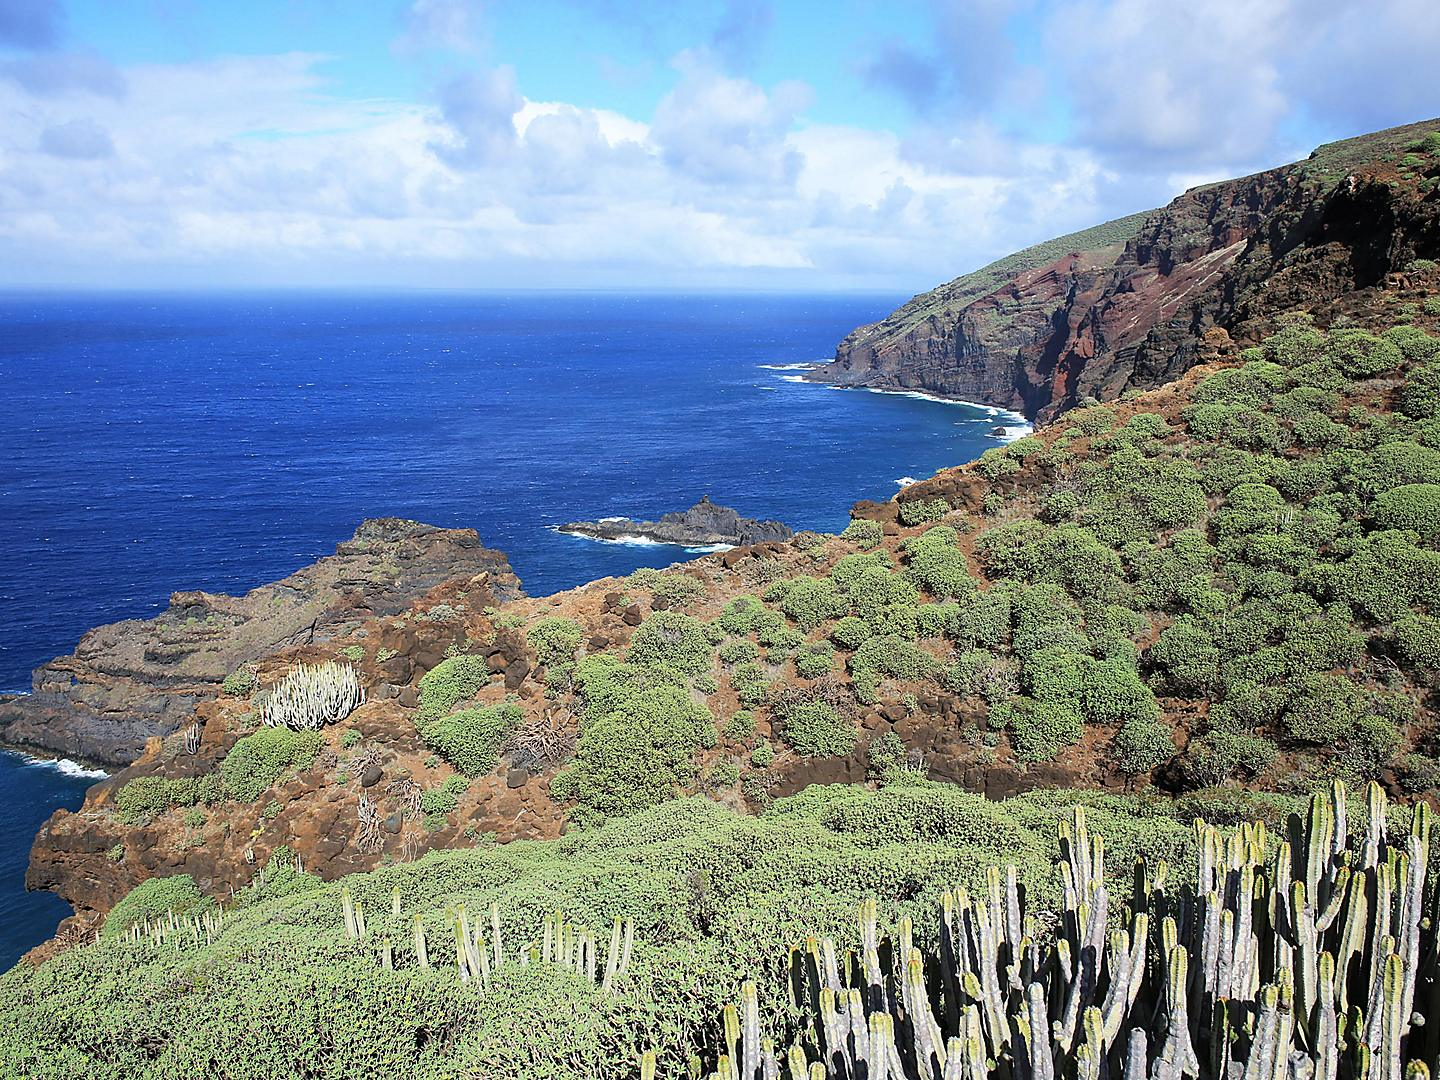 La Palma, Canary Islands, Volcanic Terrain